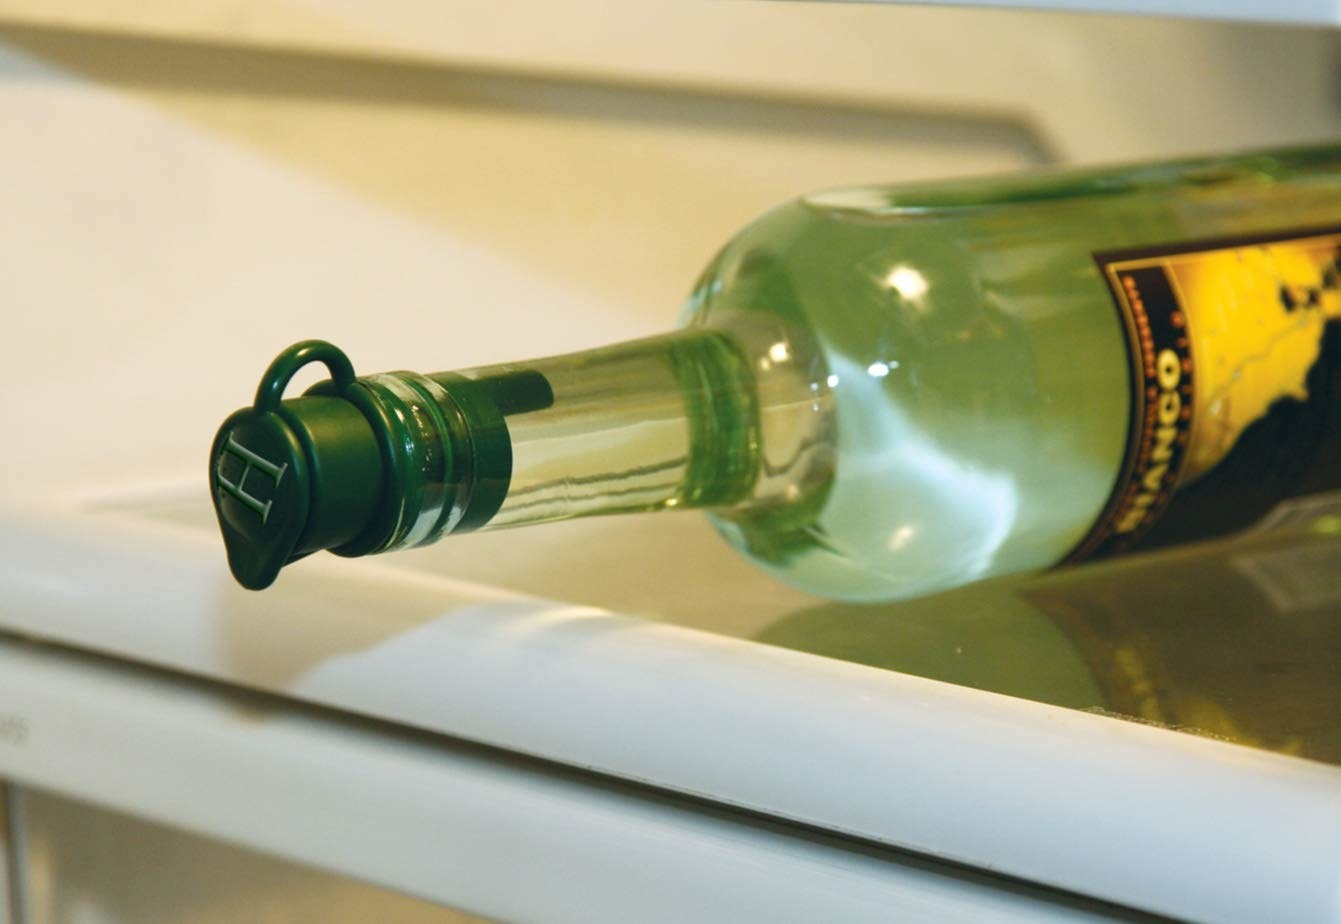 A wine bottle in the fridge with the stopper secured on the top